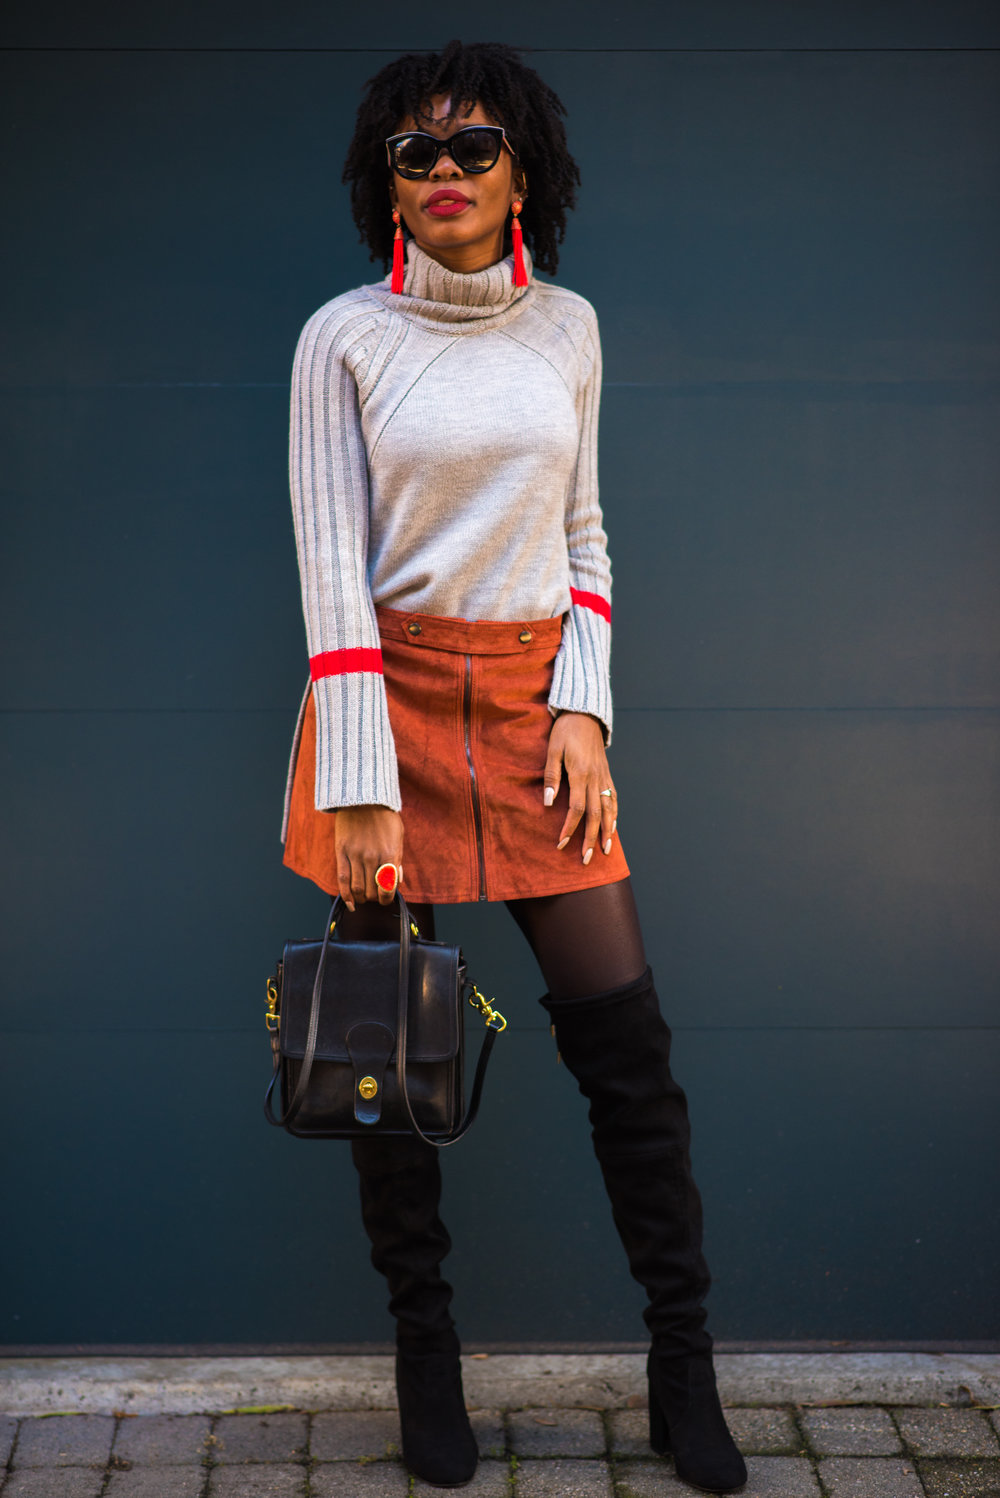 Sweater: Le Tote, Skirt: Forever 21, Boots: Steve Madden; Earrings: Le Tote; Sunglasses: Dolce & Gabbana